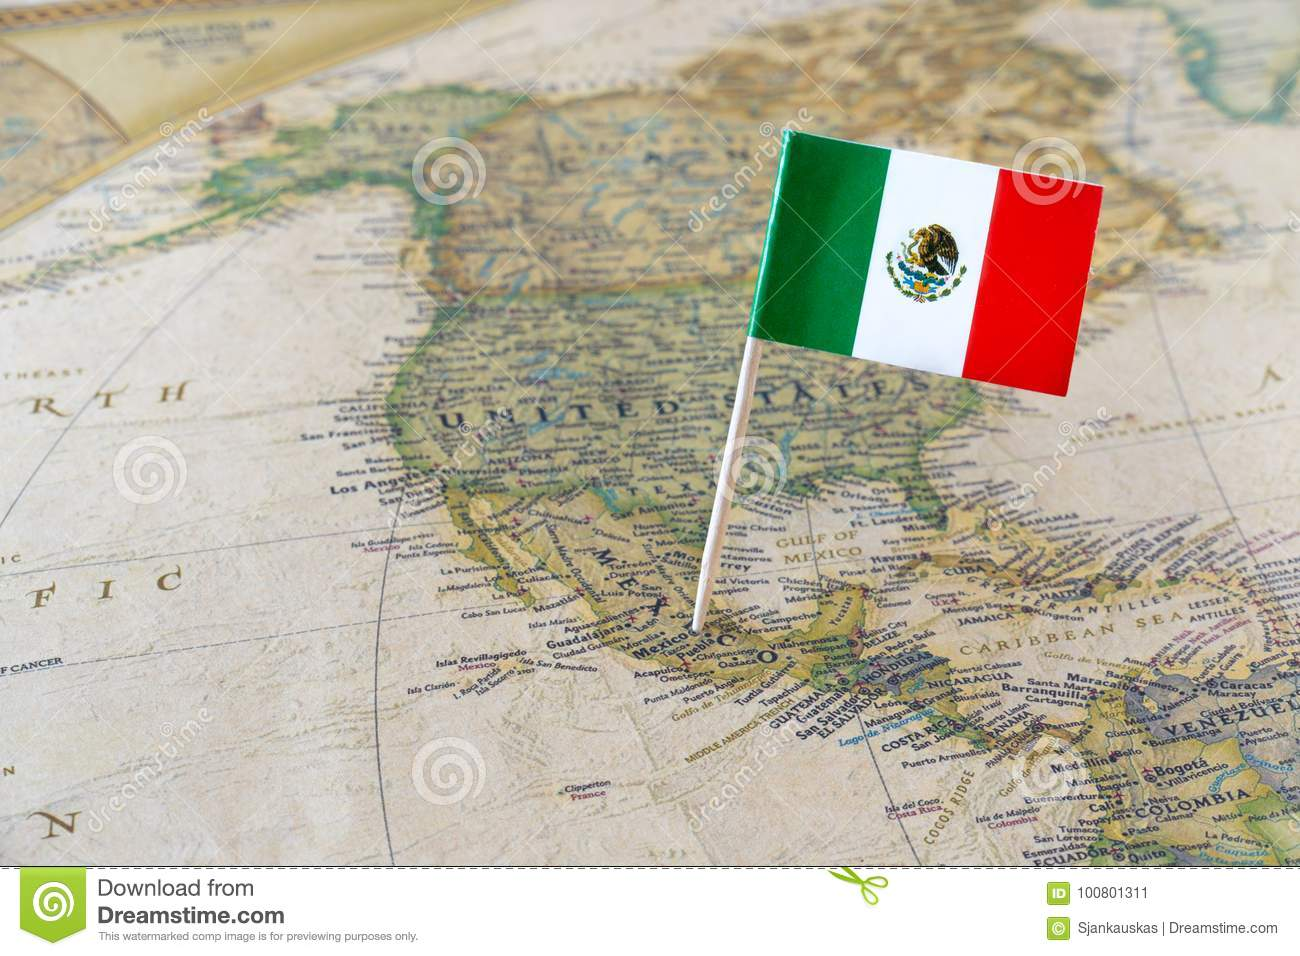 Mexico Flag Pin On Map Stock Image Image Of Canadian 100801311